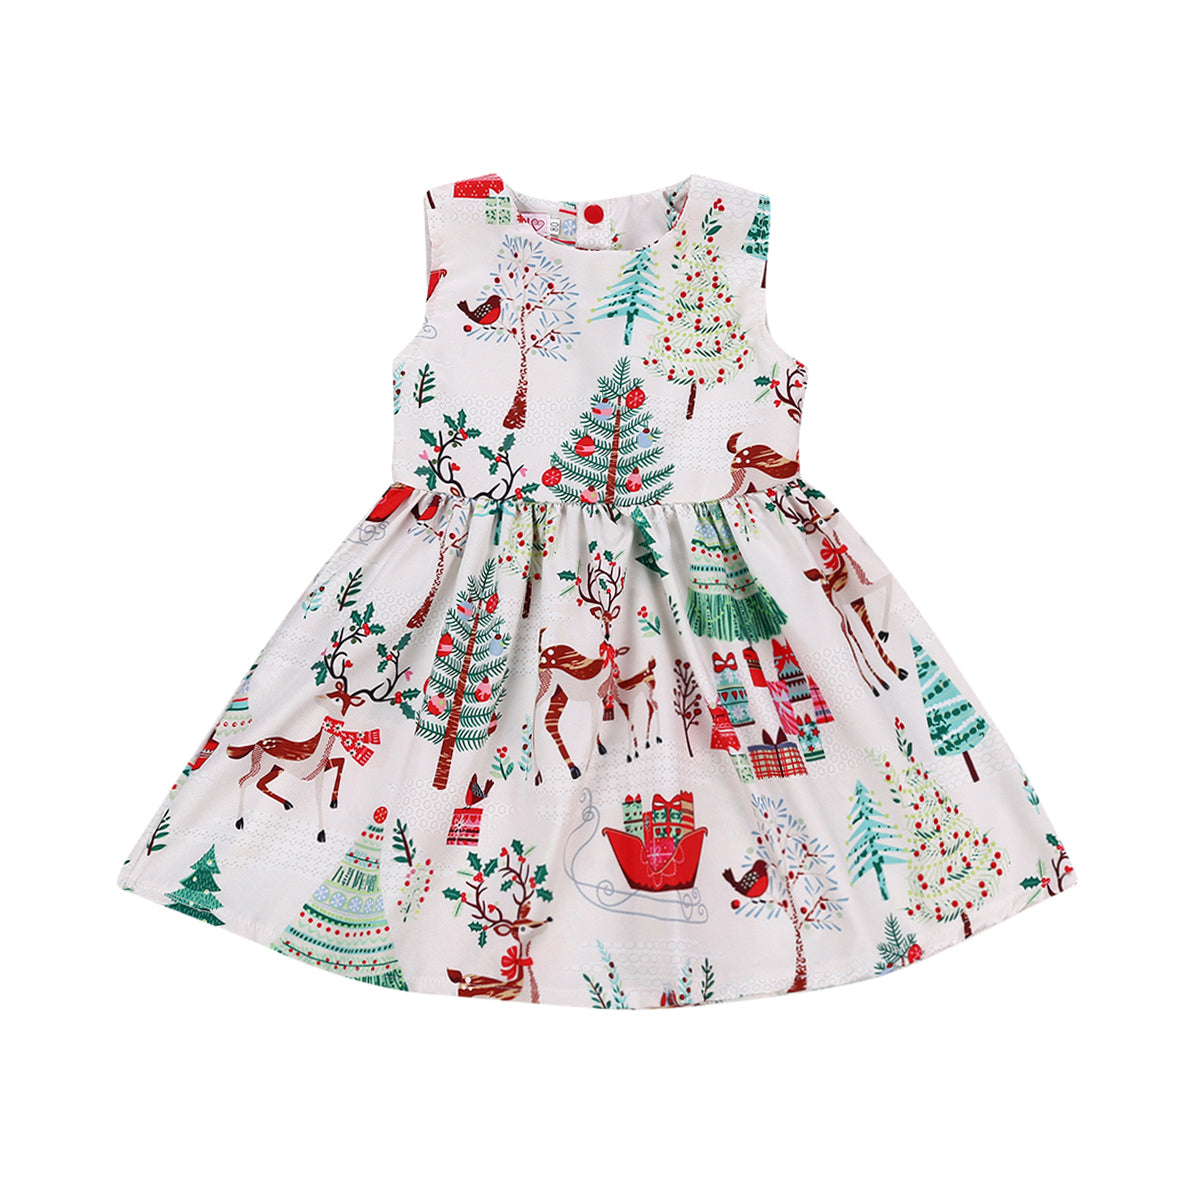 Fashion Kids Baby Girl Christmas Cartoon Deer Sleeveless Princess Party Dress Infant Casual Sundress